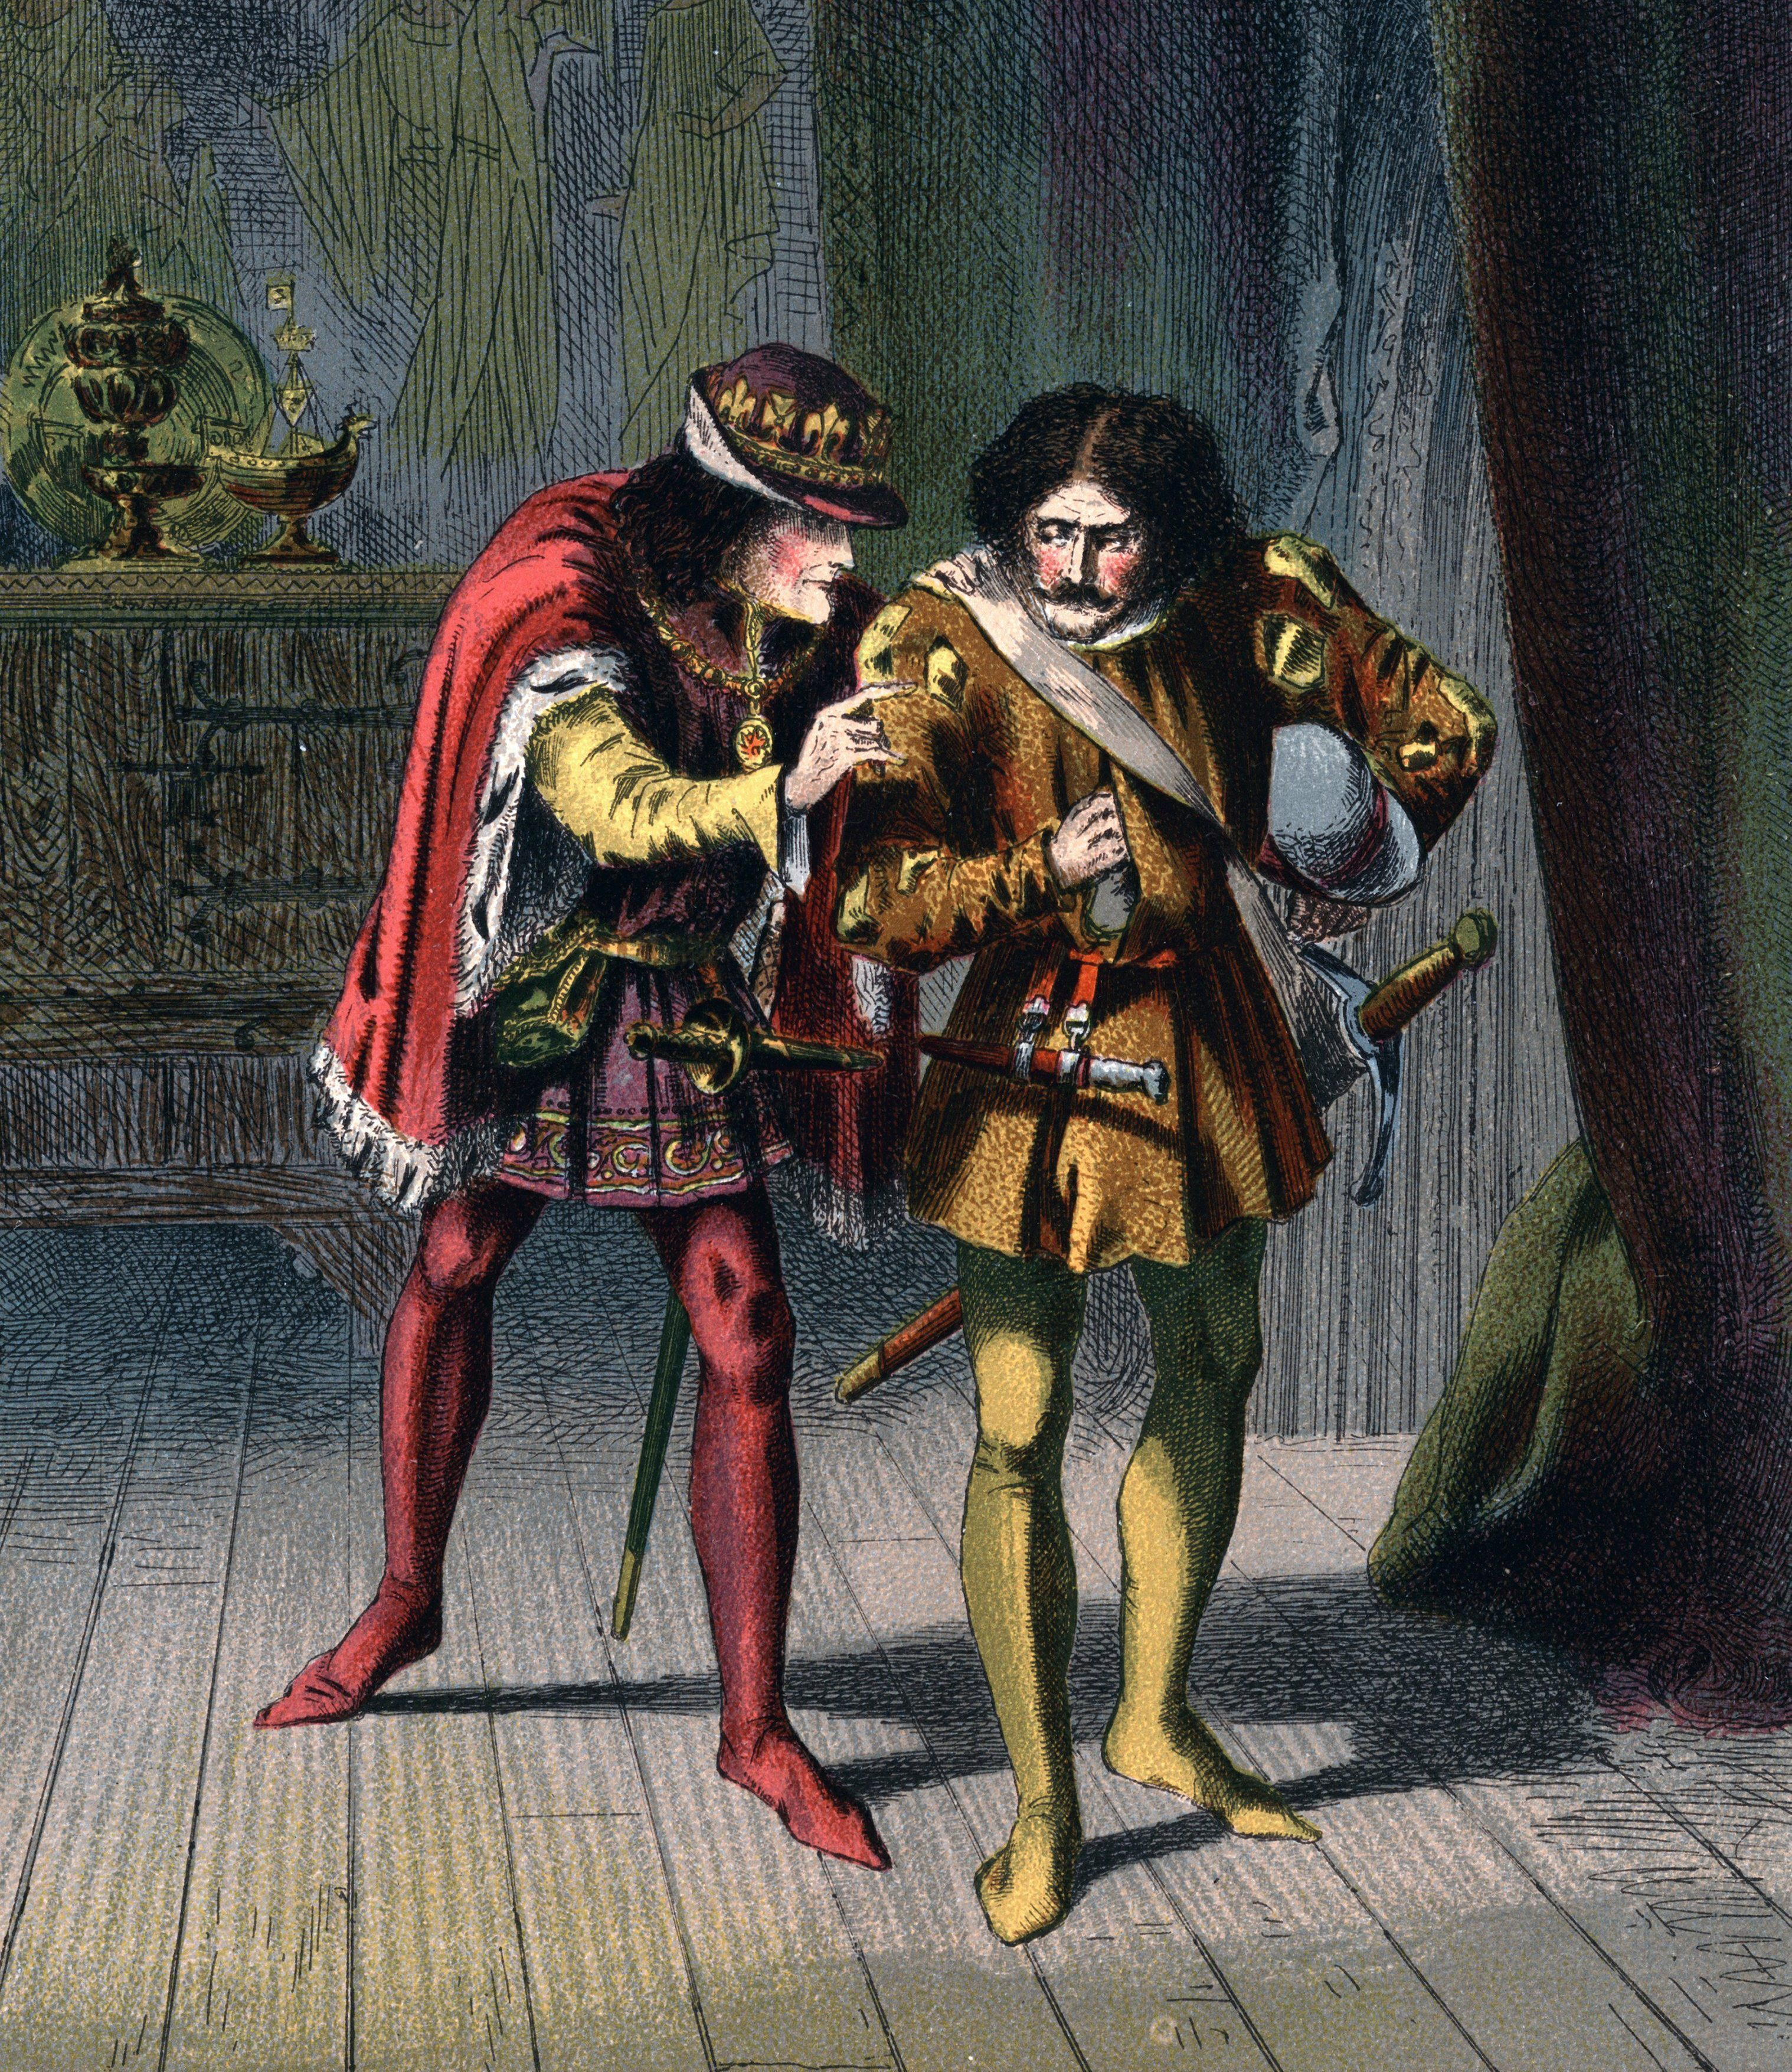 Mandatory Credit: Photo by Universal History Archive/UIG/Shutterstock (2549422a) Richard III (1452-1485) King of England from 1483, gives Sir James Tyrrell the order to kill the sons of Edward IV (Edward V and the Duke of York), the Princes in the Tower, with the inducement say it is done,/And I will love thee, and prefer thee too. Illustration by Robert Dudley for Shakespeare Richard III Act IV. Sc.II published c.1858. Chromolithograph History